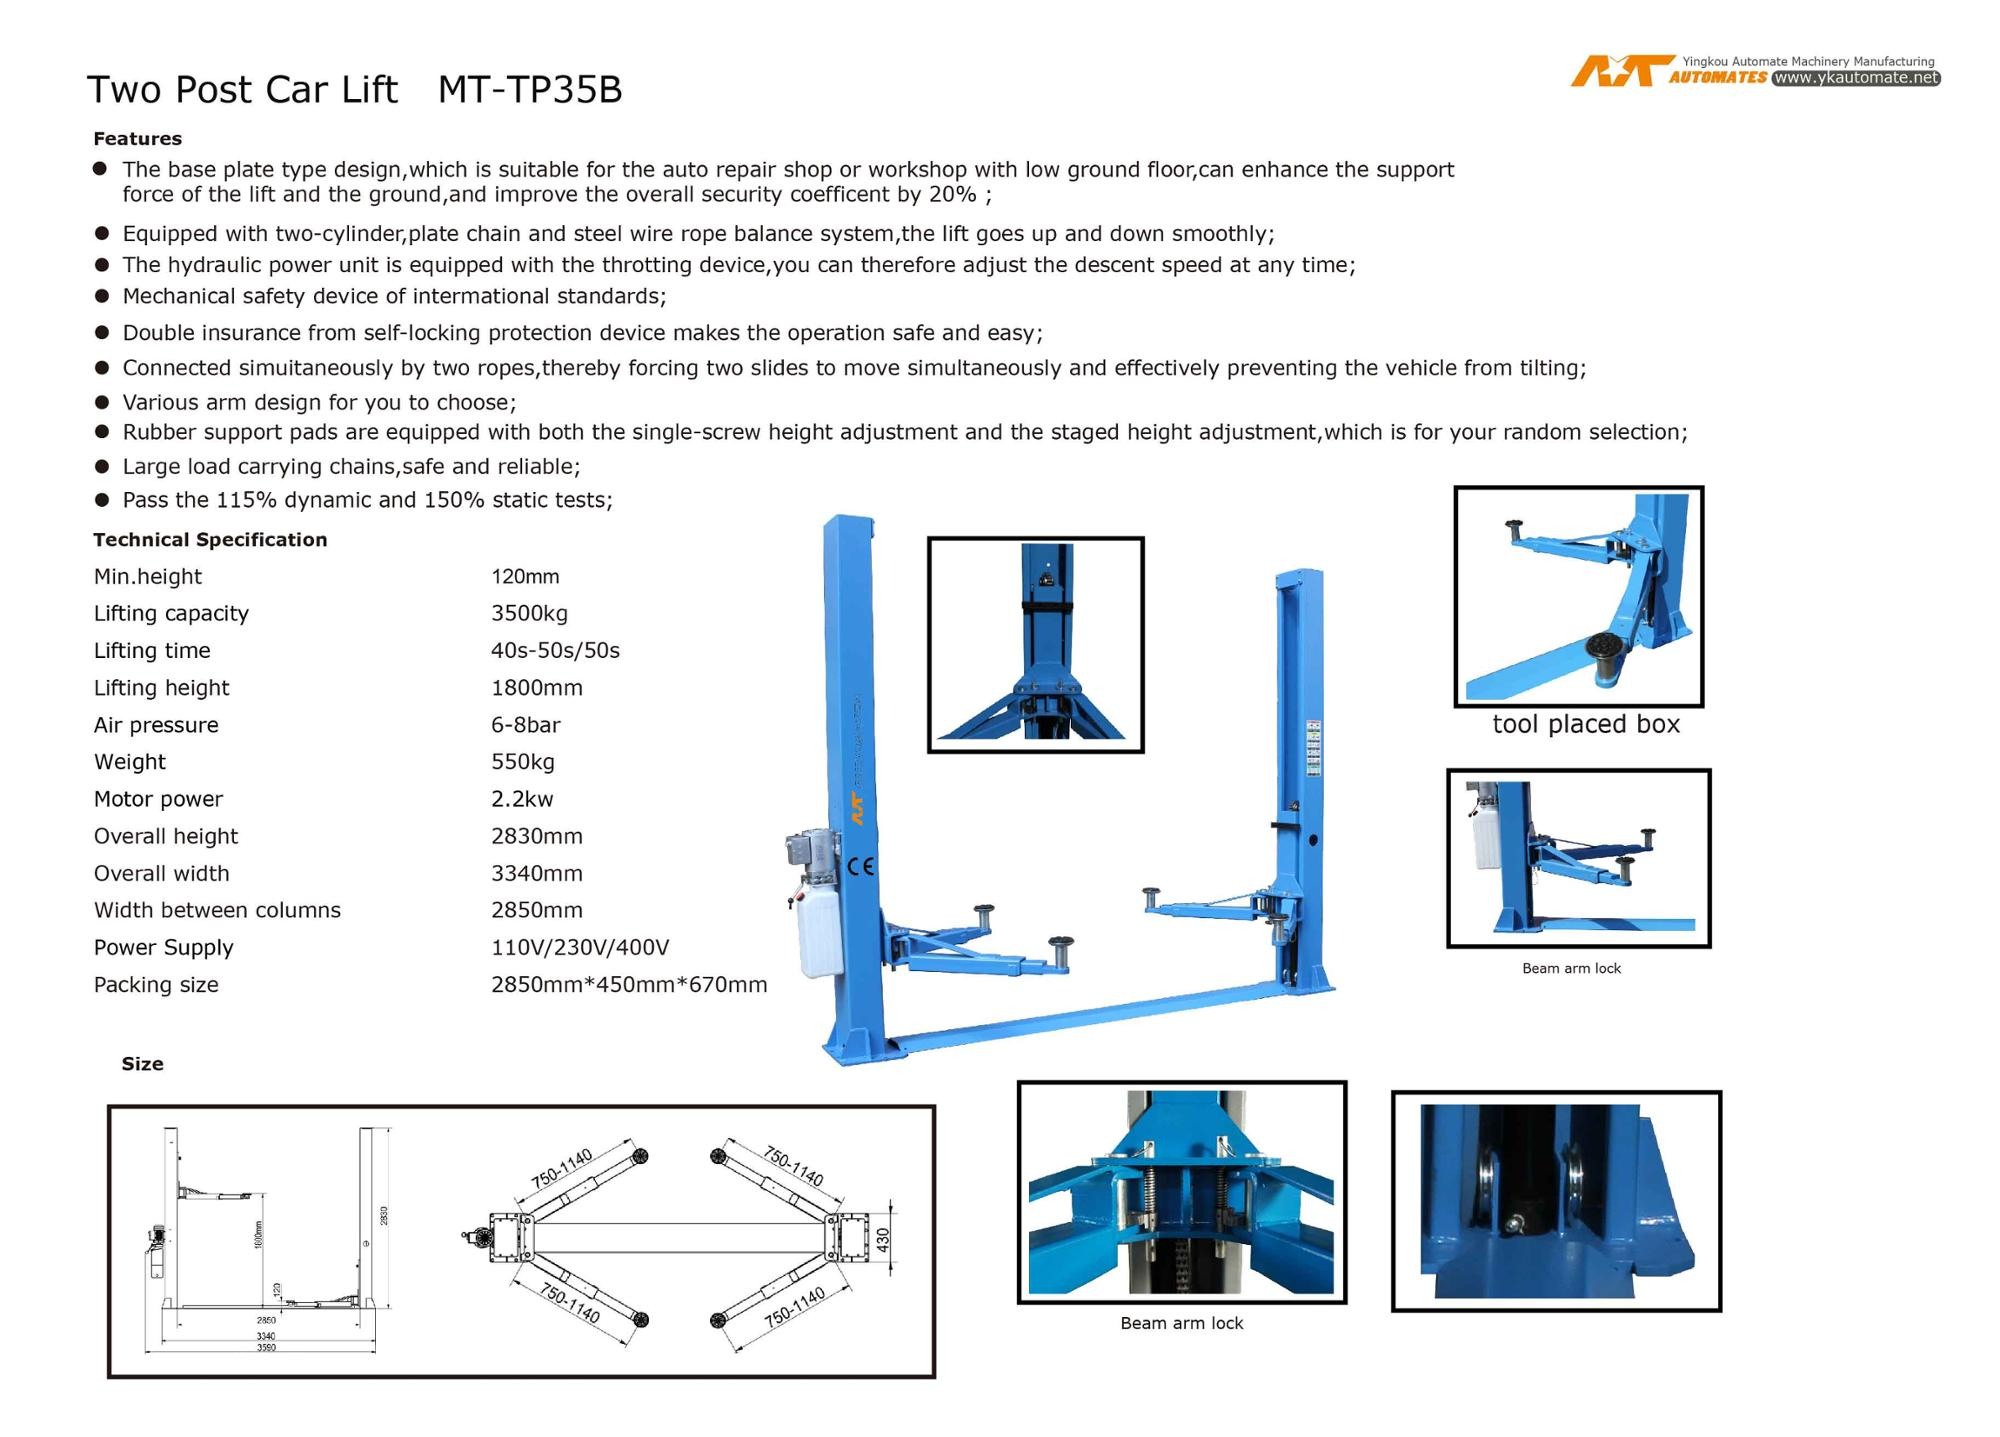 MT Manual release floor plate 2 post car lift with CE MT-TP35B